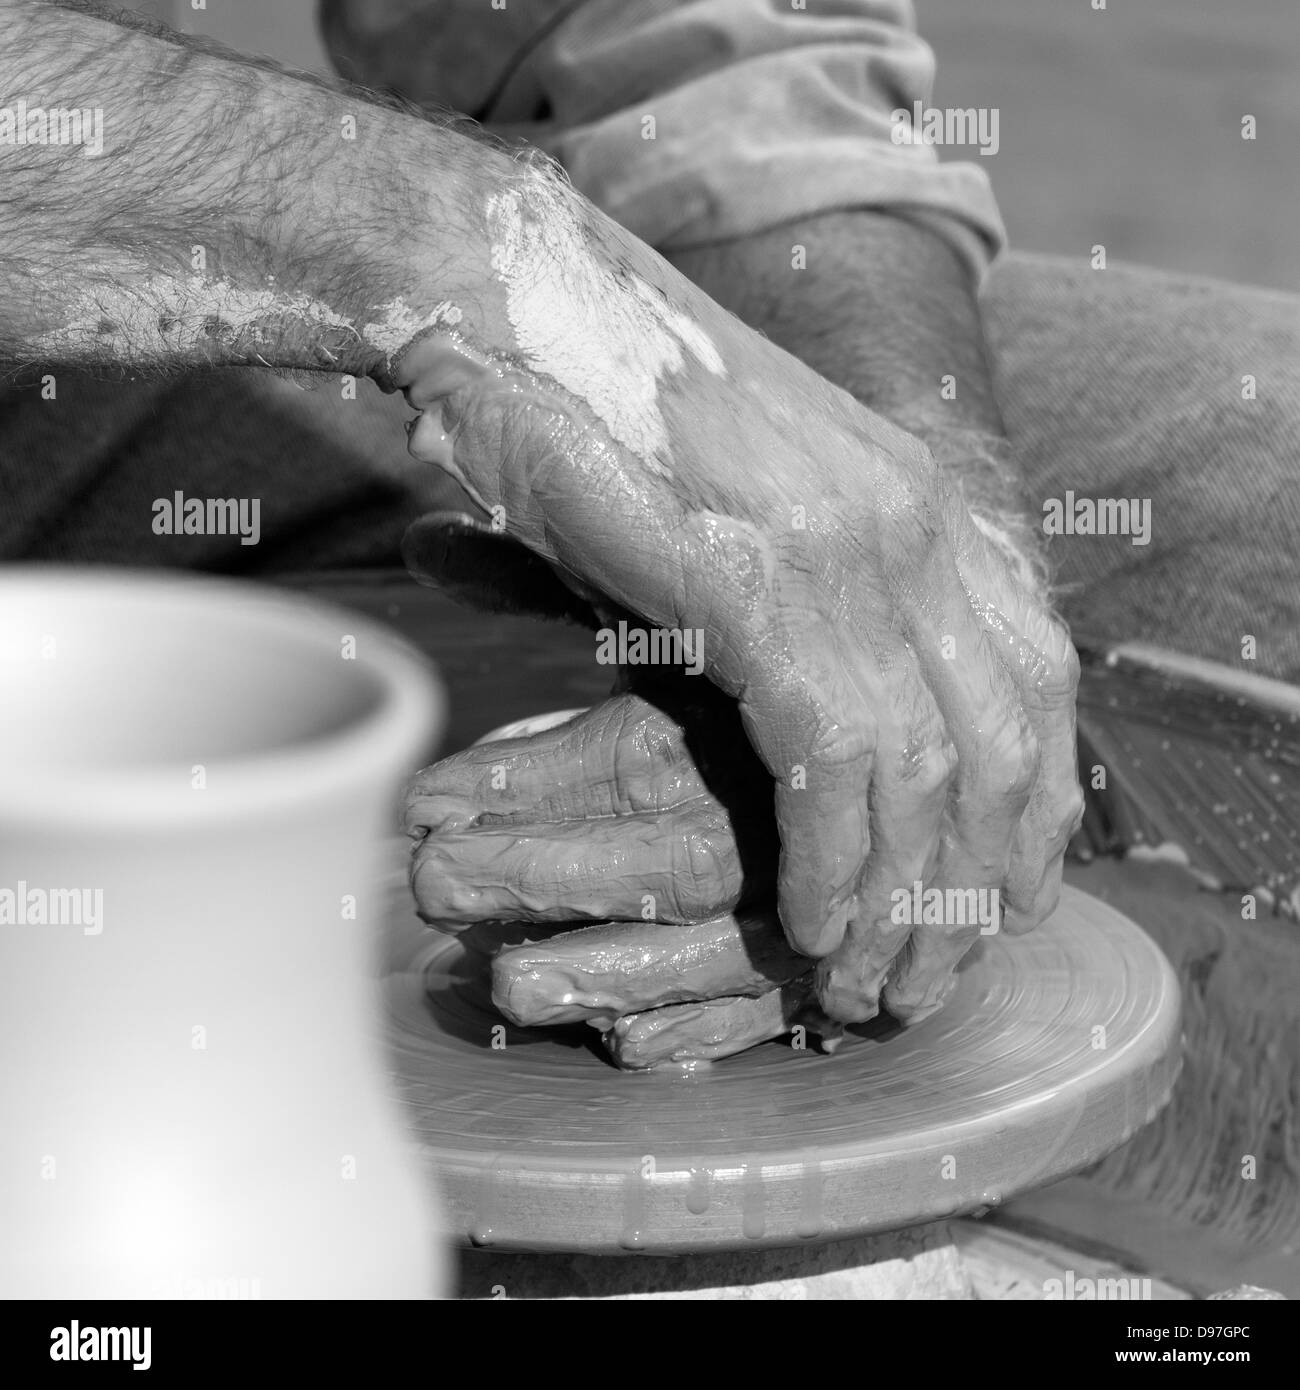 potter's hands - Stock Image